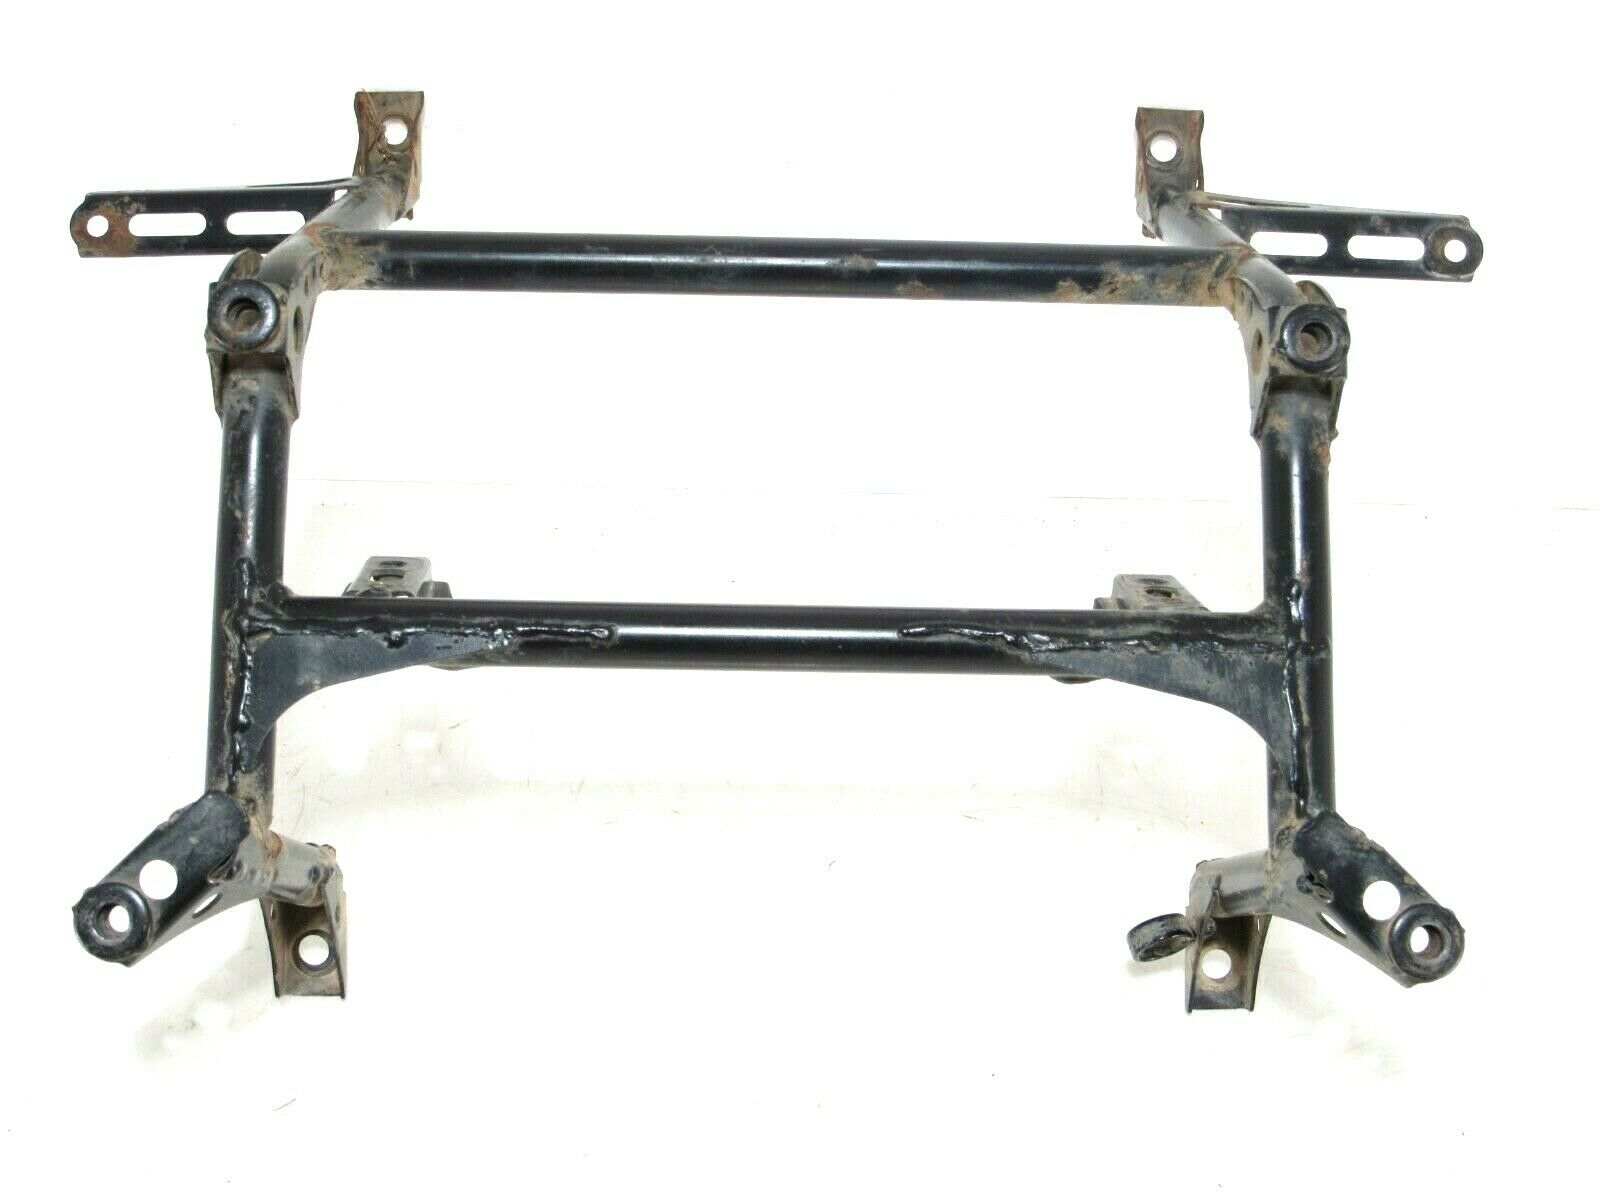 2005 Kawasaki Brute Force 750 4x4 Front Rack Stay Carrier